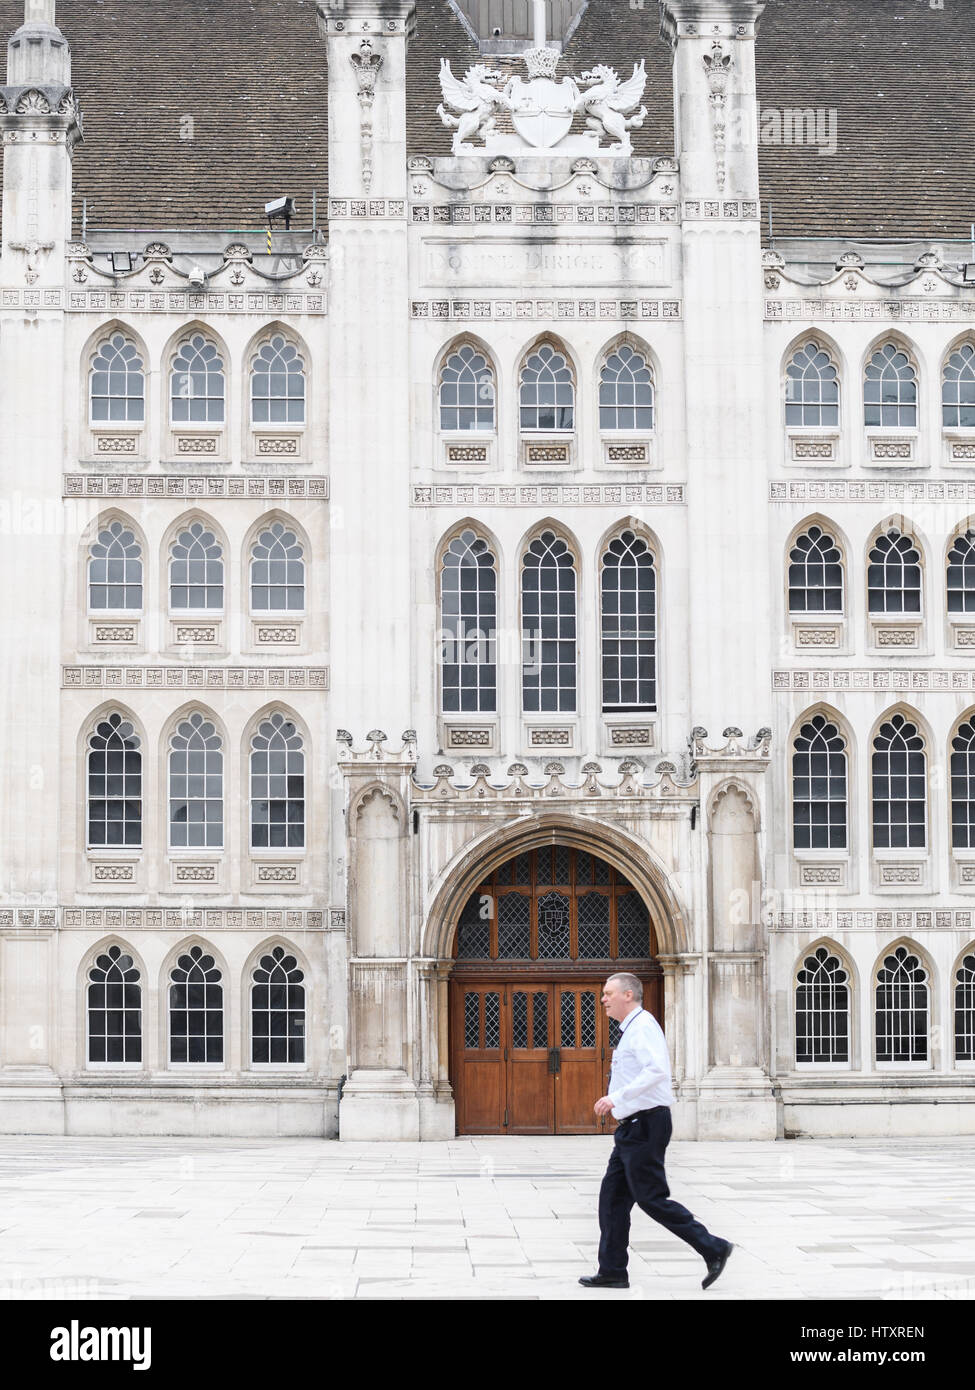 fifteenth century City of London, Guildhall. - Stock Image